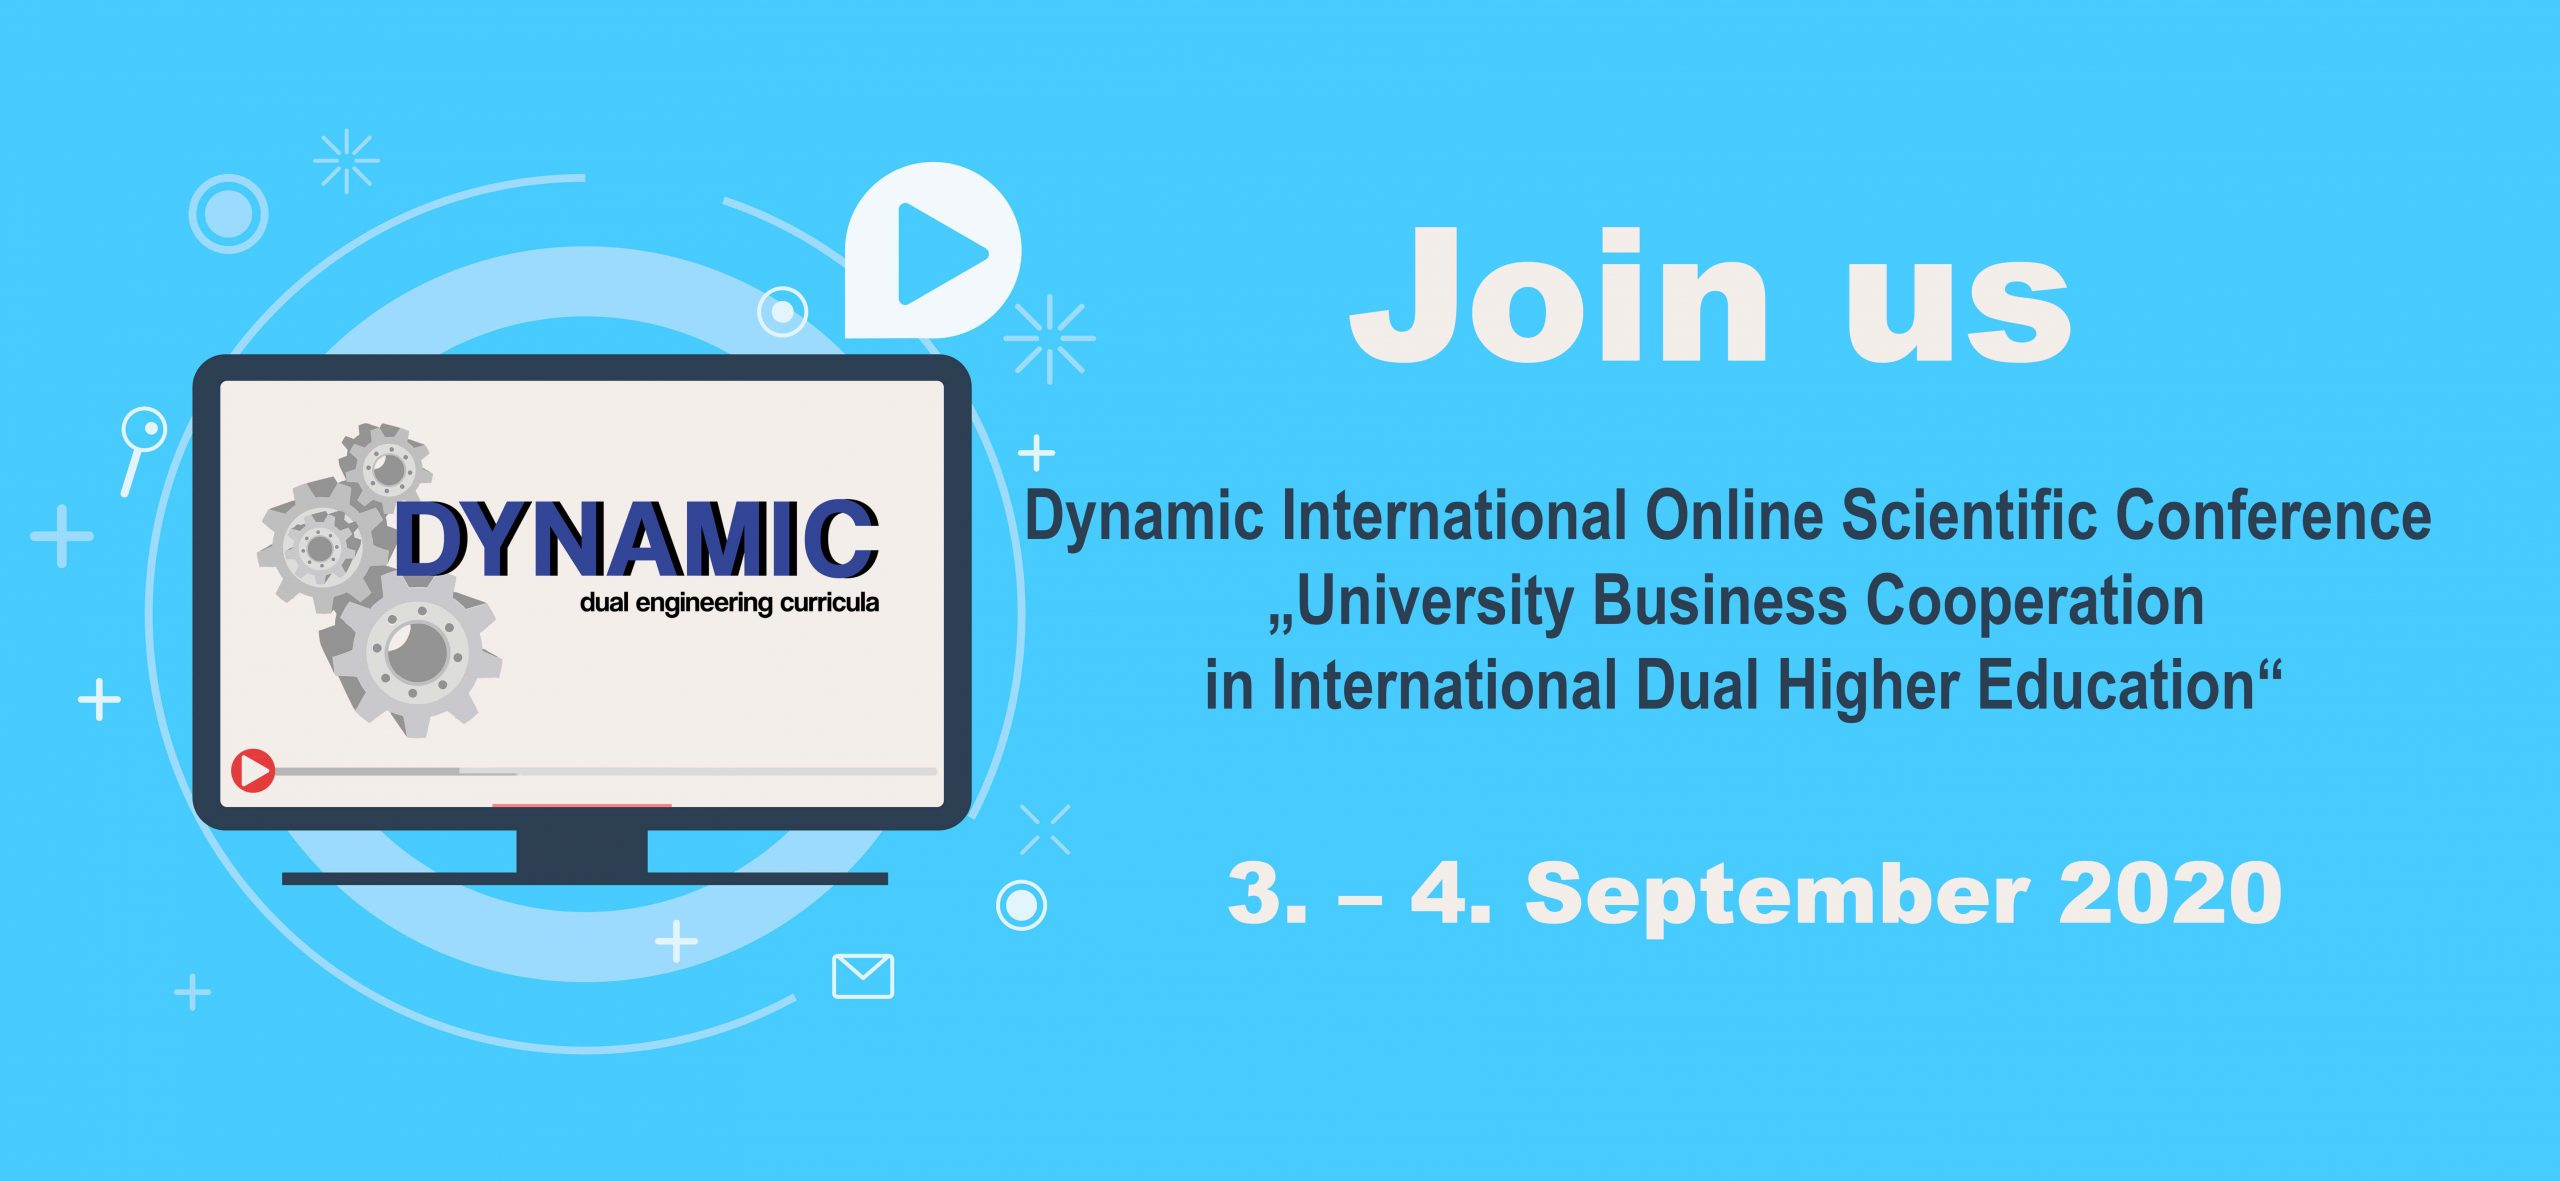 Join the Dynamic International Online Scientific Conference